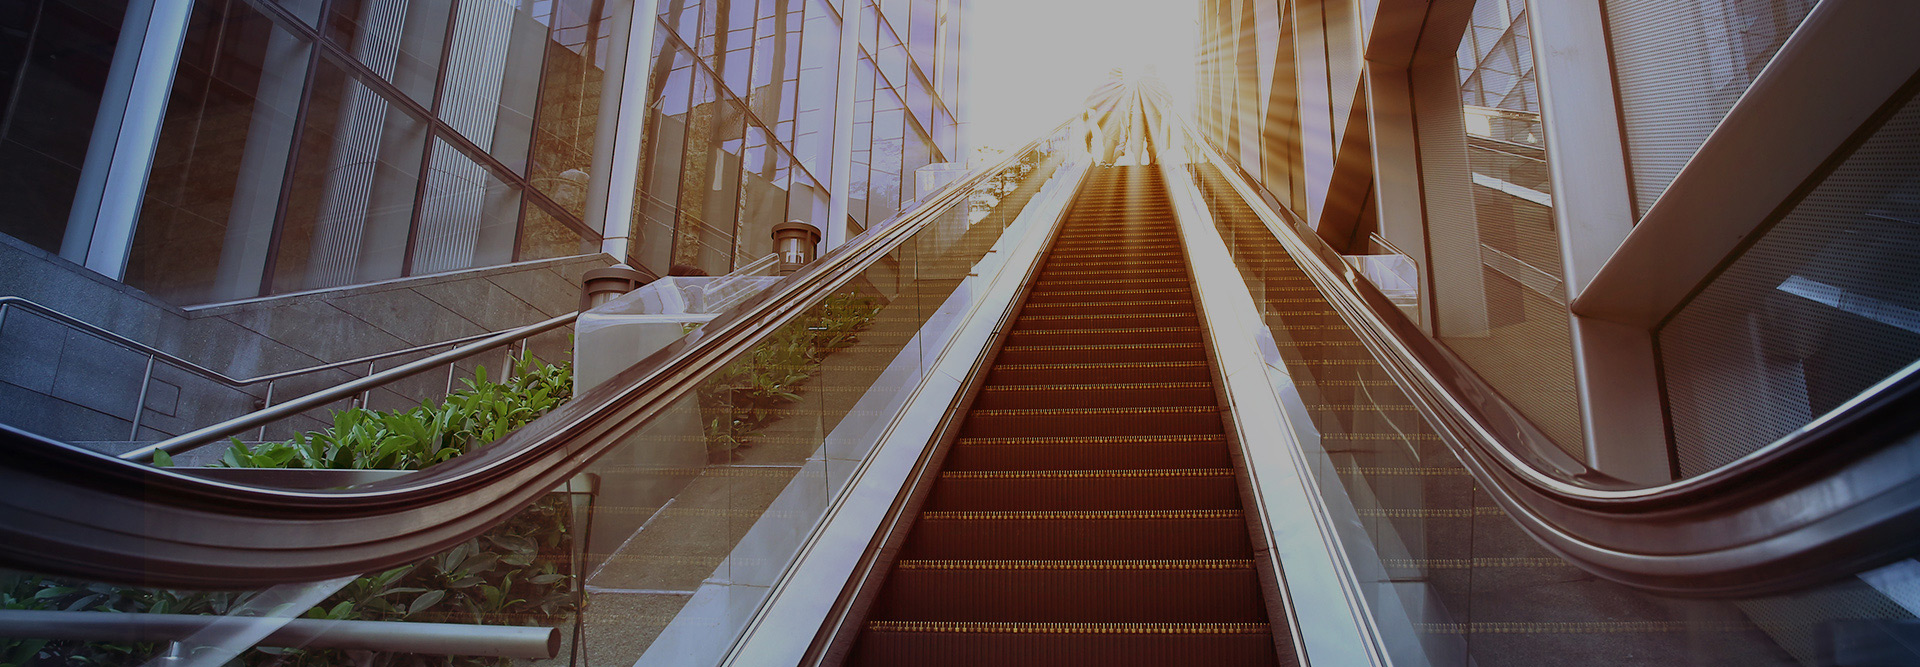 low-angle-shot-escalator-sun-flare-carouse-1920x667